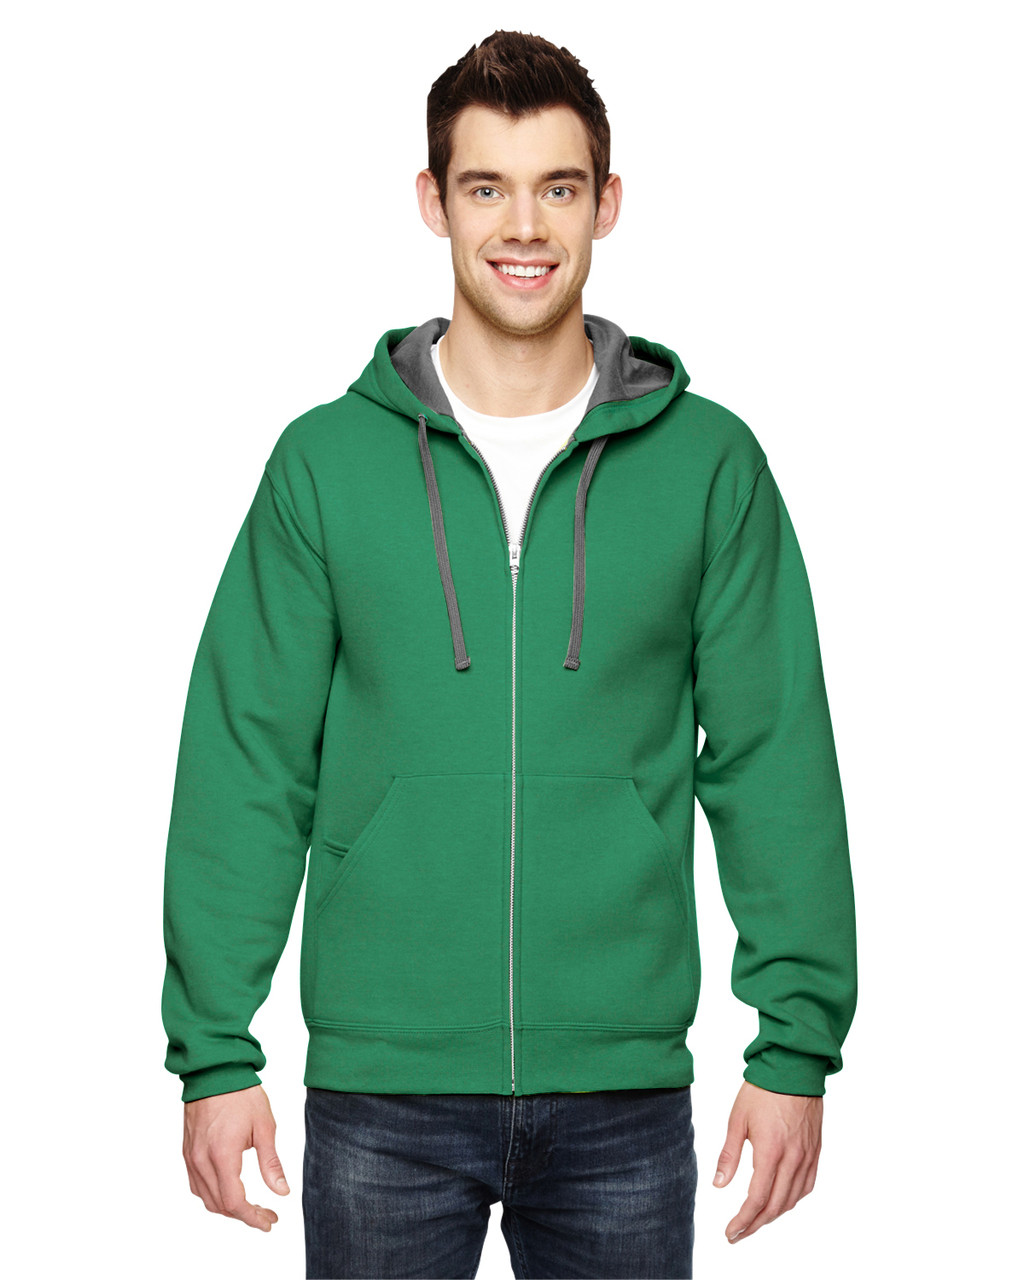 Clover - SF73R Fruit Of The Loom Softspun Full-Zip Hooded Sweatshirt | Blankclothing.ca